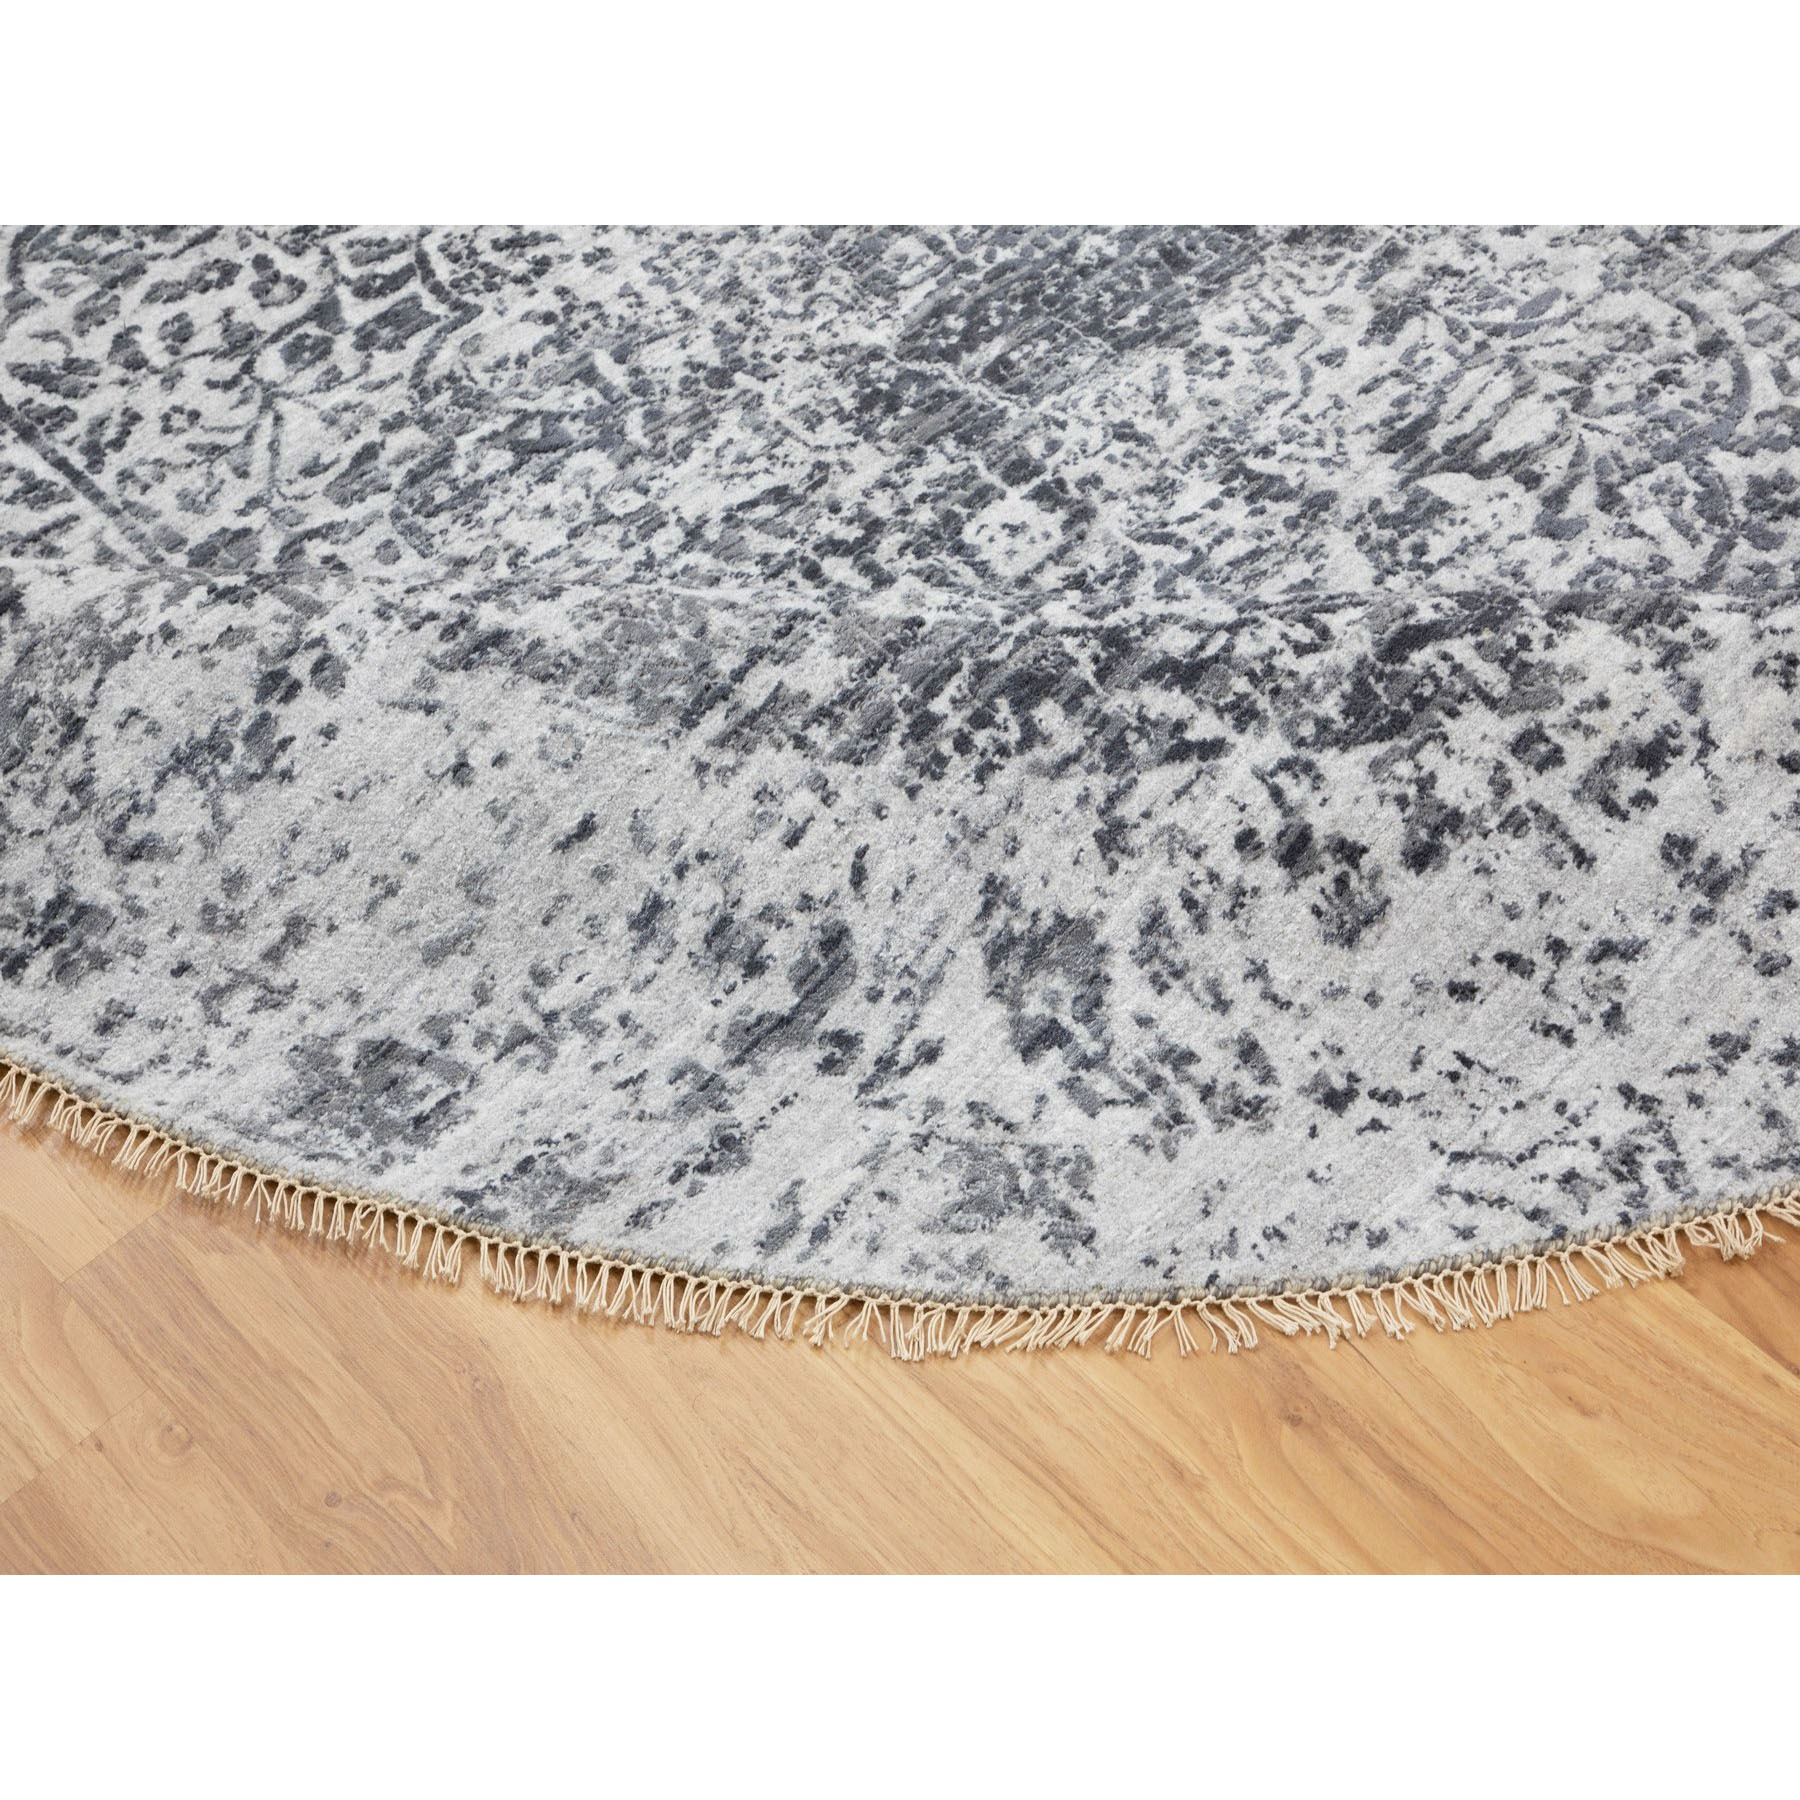 8'x8' Round Broken Persian Design Wool and Pure Silk Hand Knotted Oriental Rug